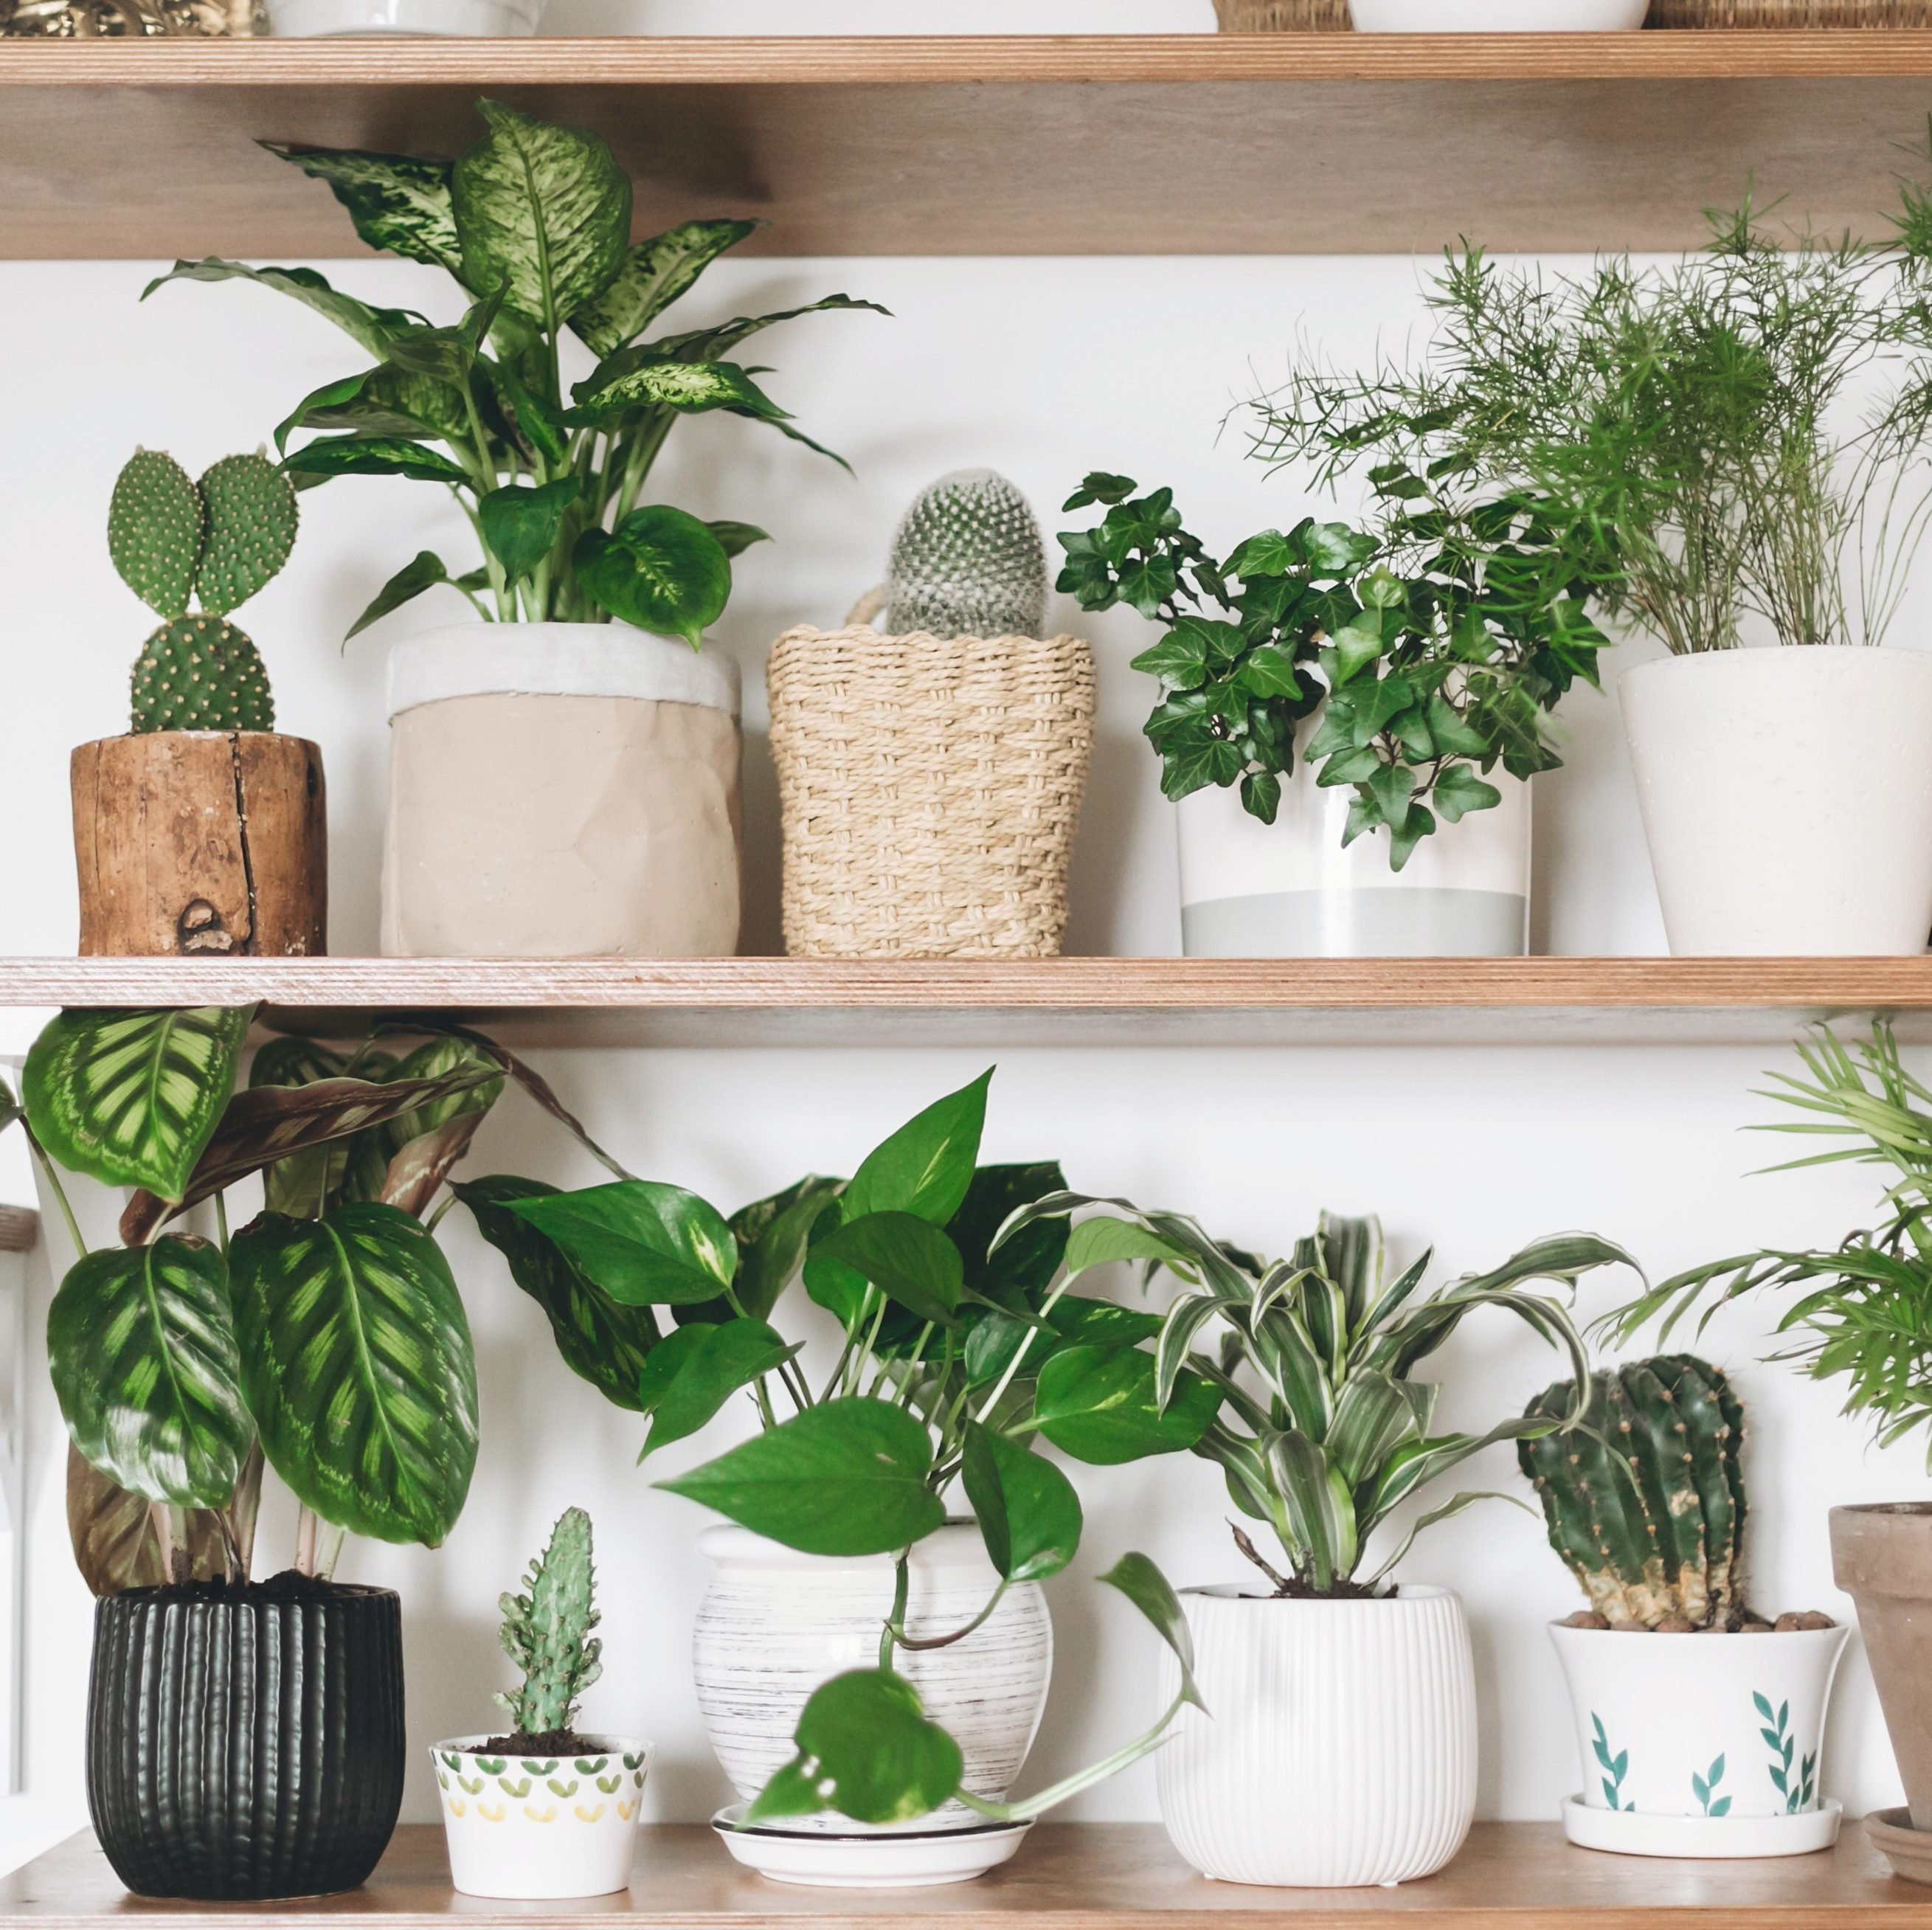 Stylish wooden shelves with green plants and black watering can. Modern room decor. Cactus, dieffenbachia, asparagus, epipremnum, calathea,dracaena,ivy, palm,sansevieria in pots on shelf